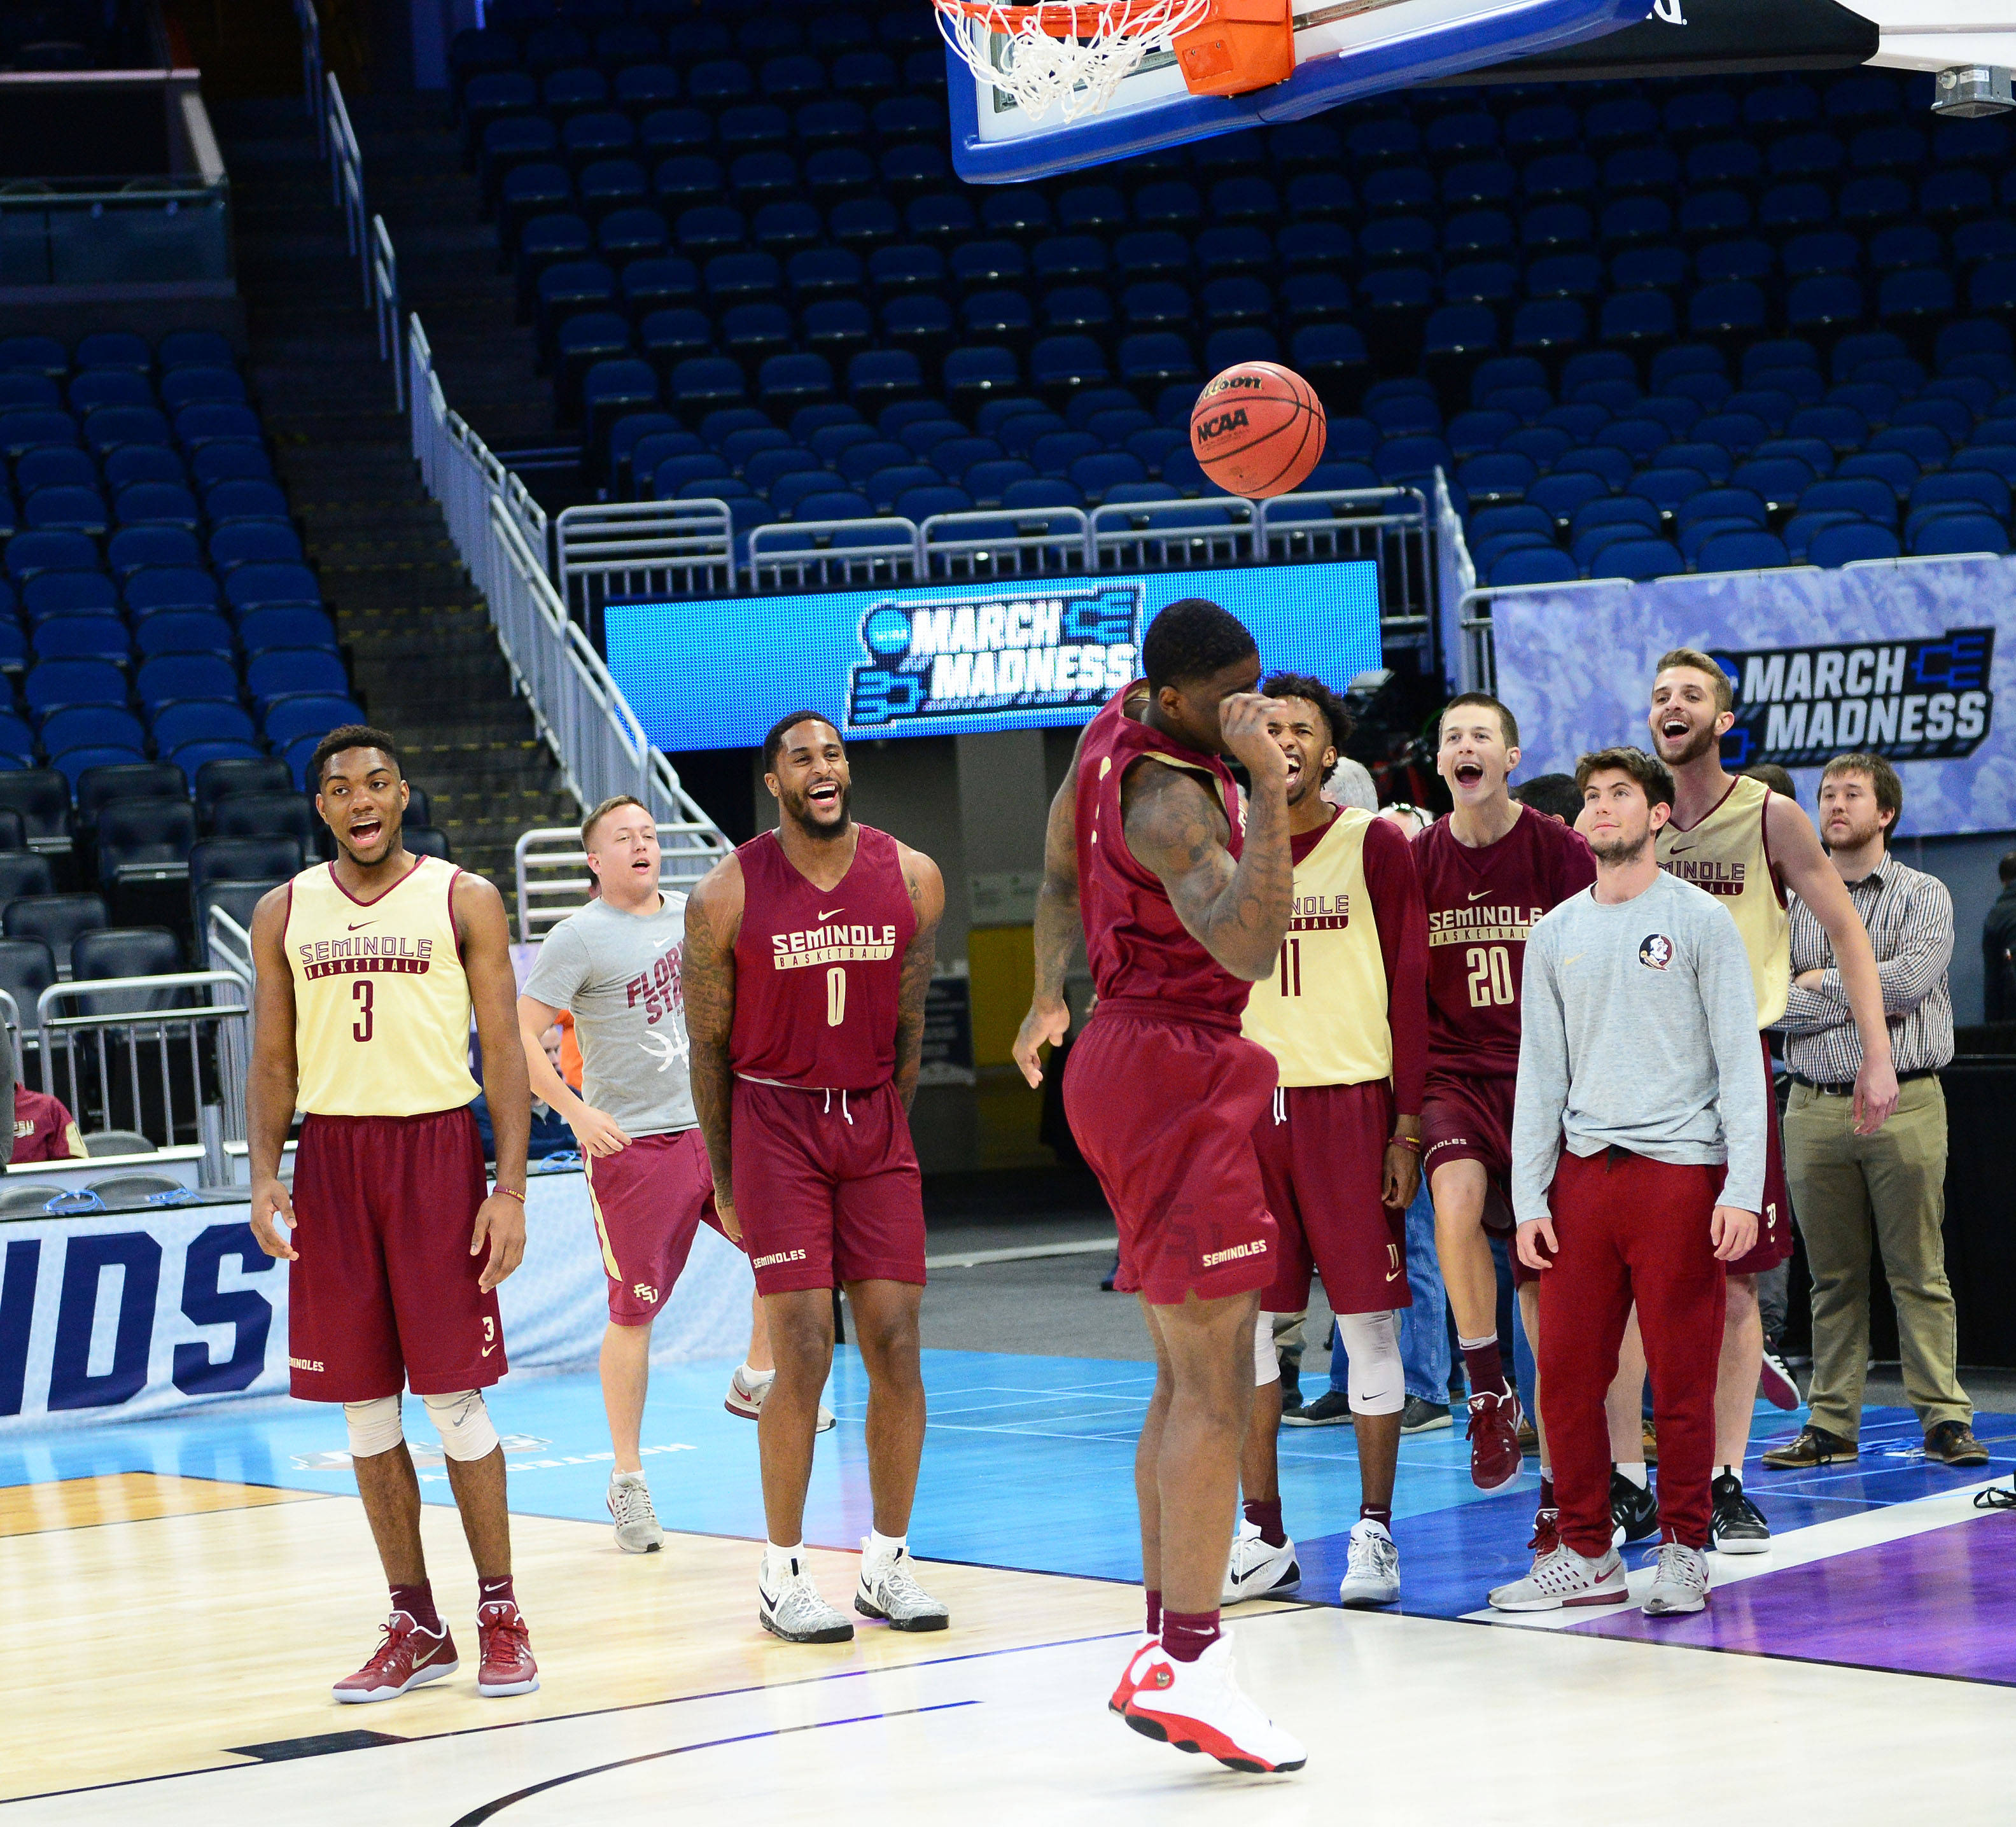 NCAA Men's Basketball Tournament Practice Day